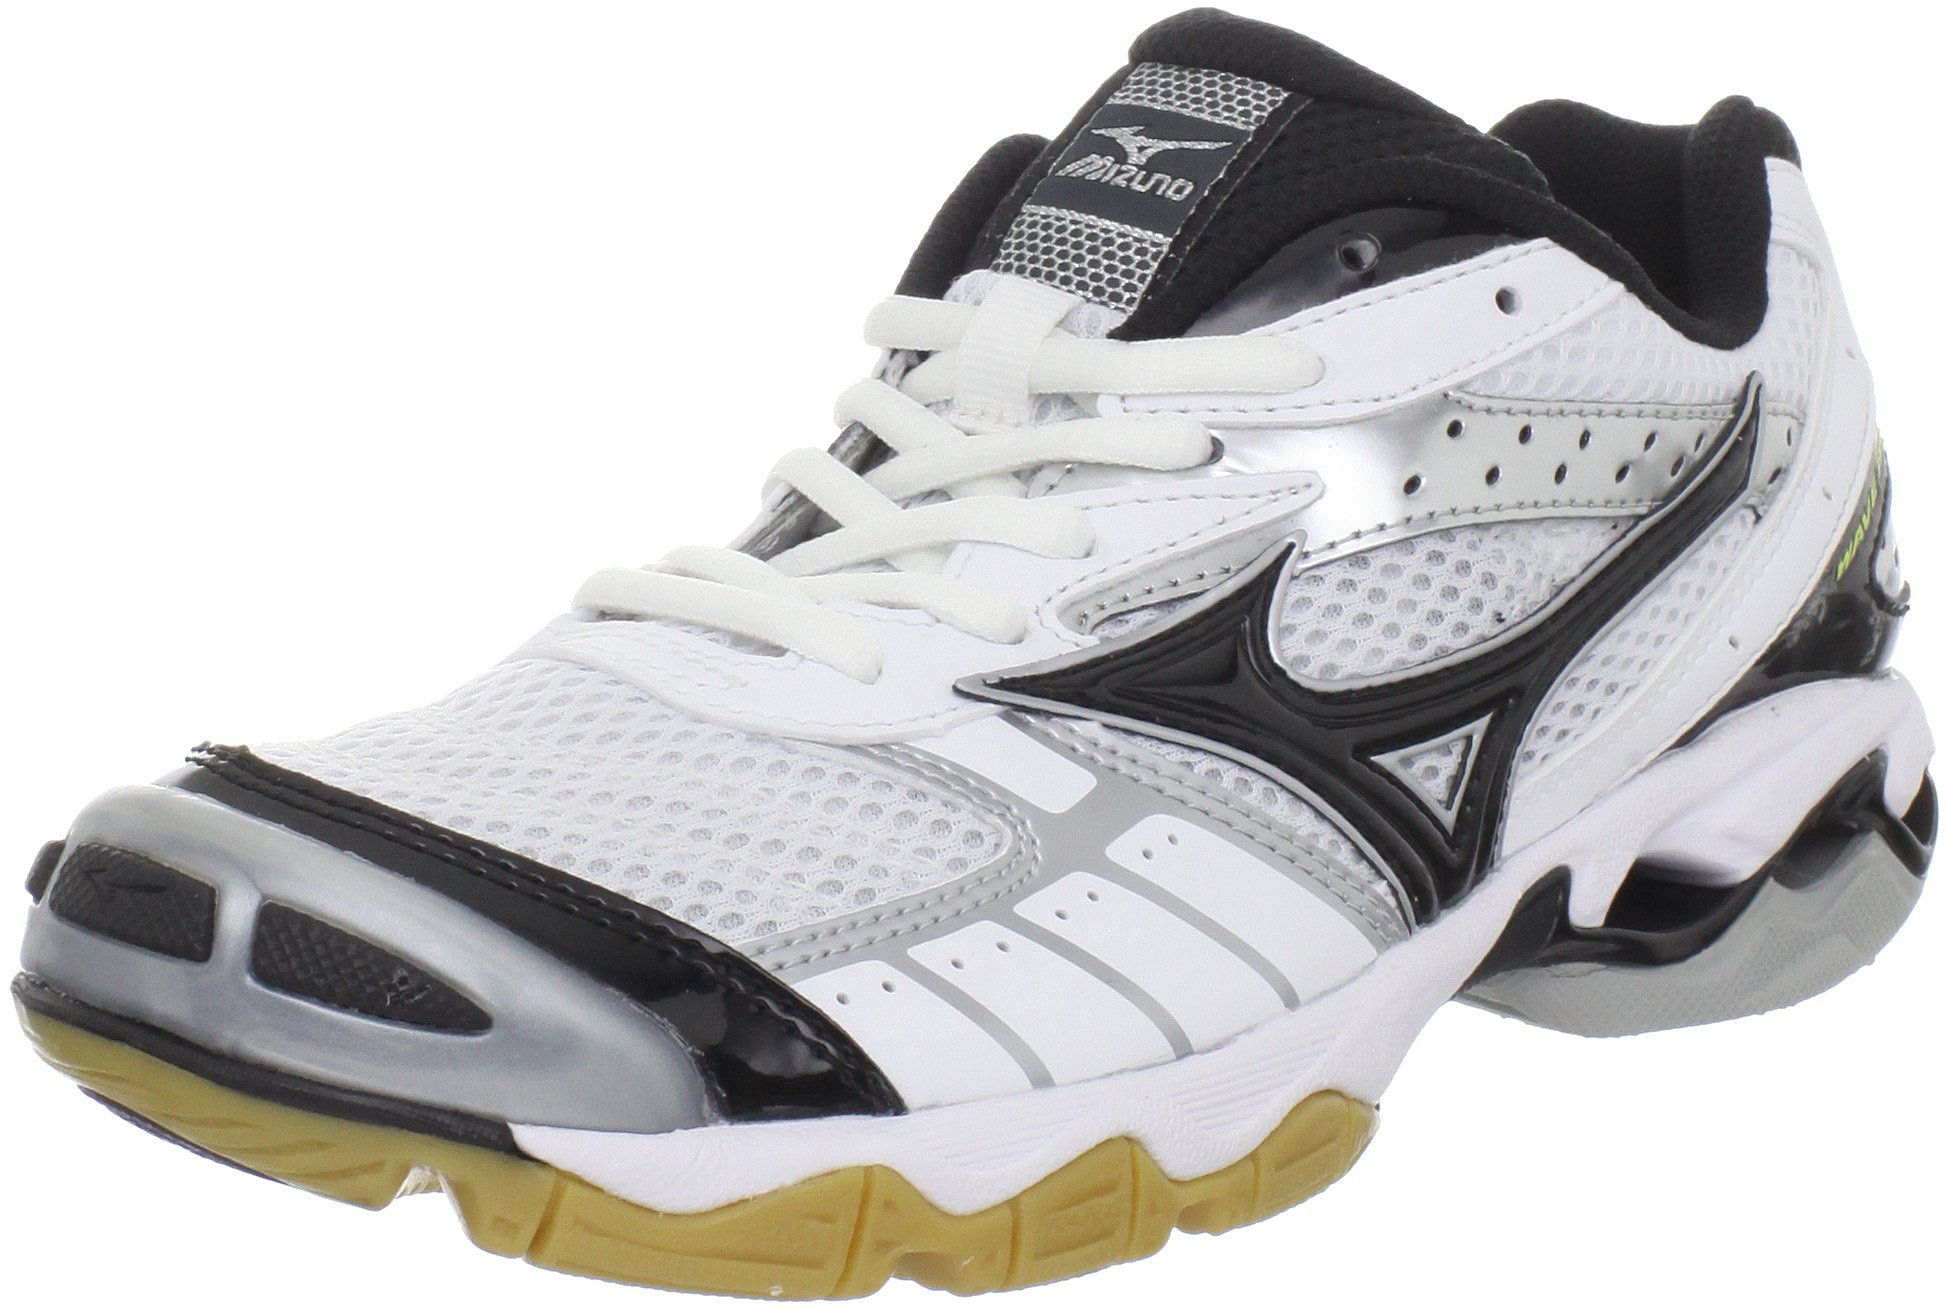 Mizuno Women's Wave Bolt Volleyball Shoe,White/Black,9 M US